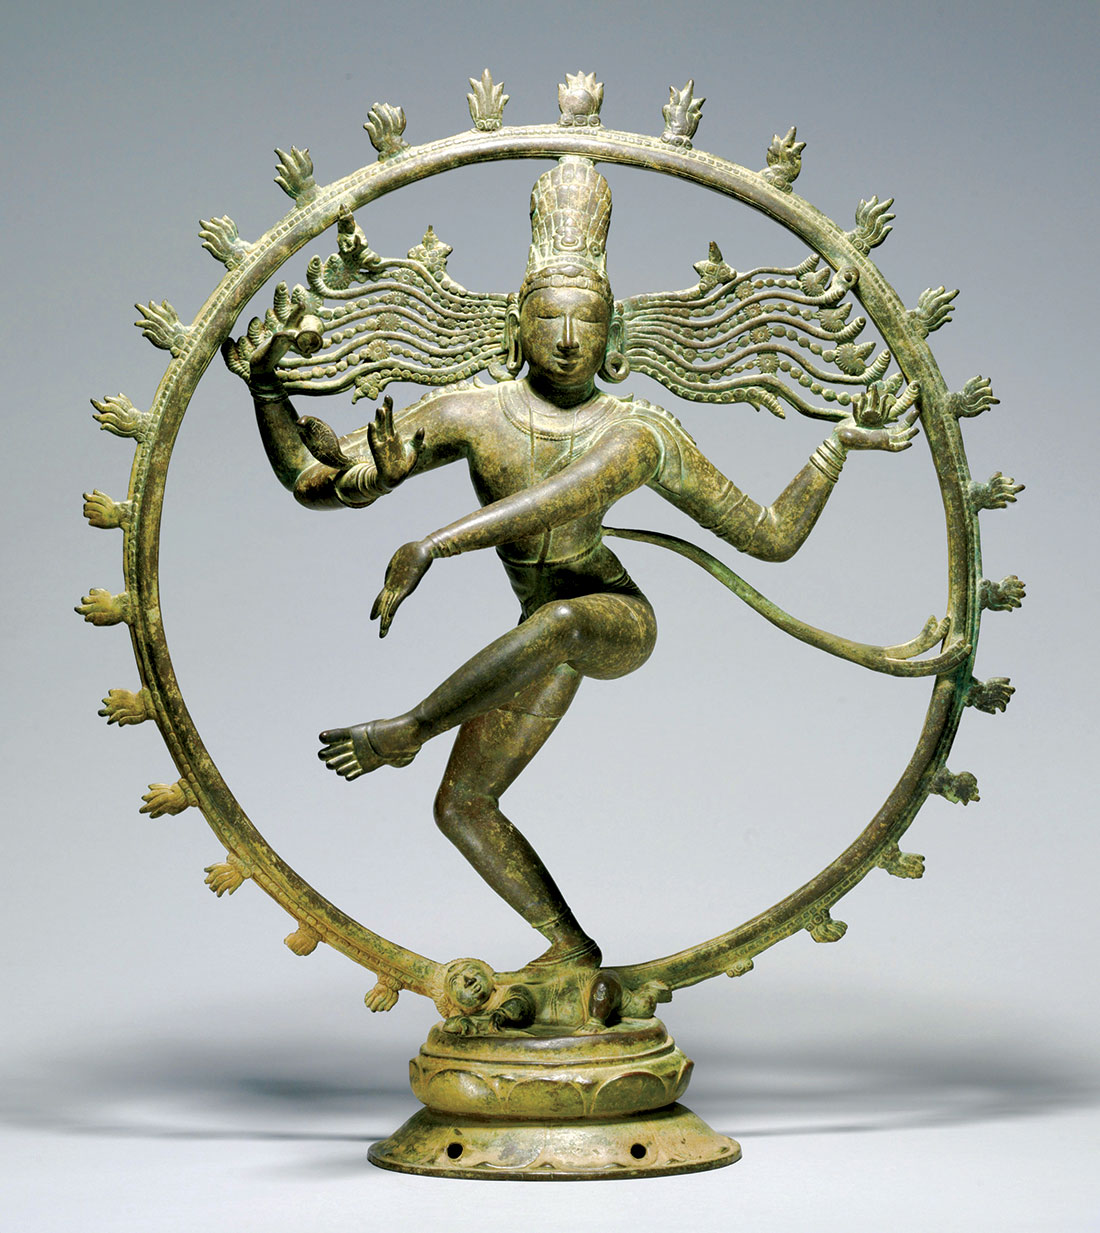 Touching the divine: Shiva as Lord of the Dance, bronze, Chola period, 10th-11th century.